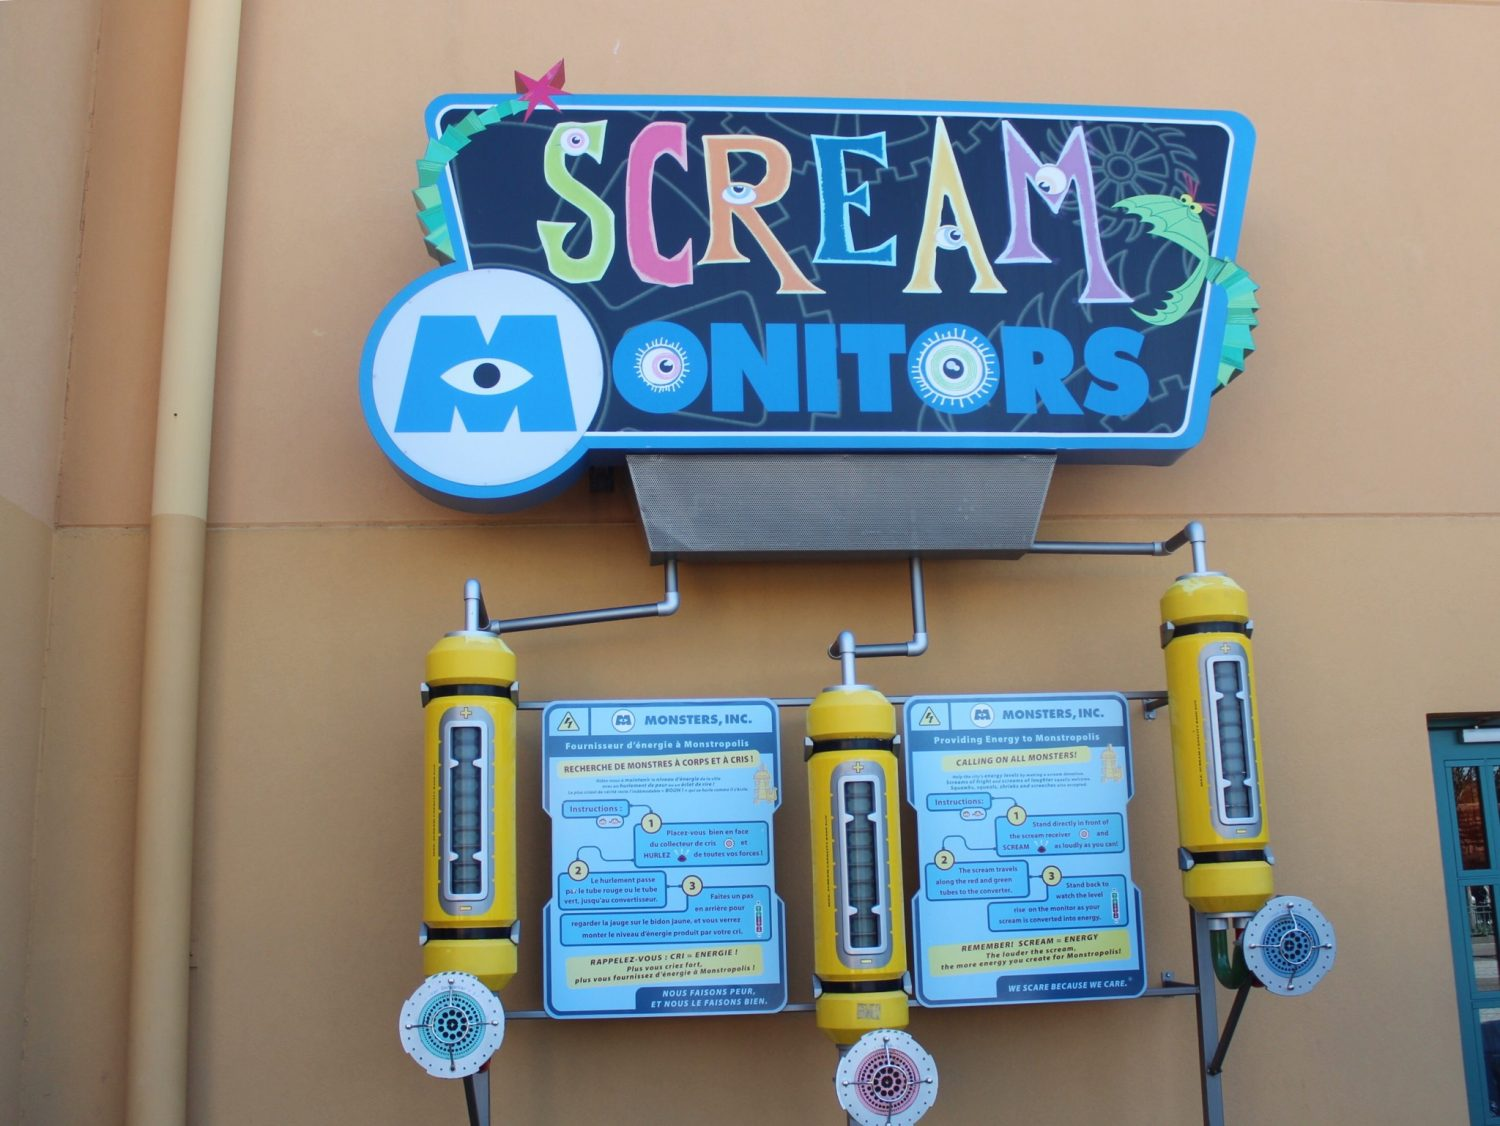 Walt Disney Studios Park Scream Monitors